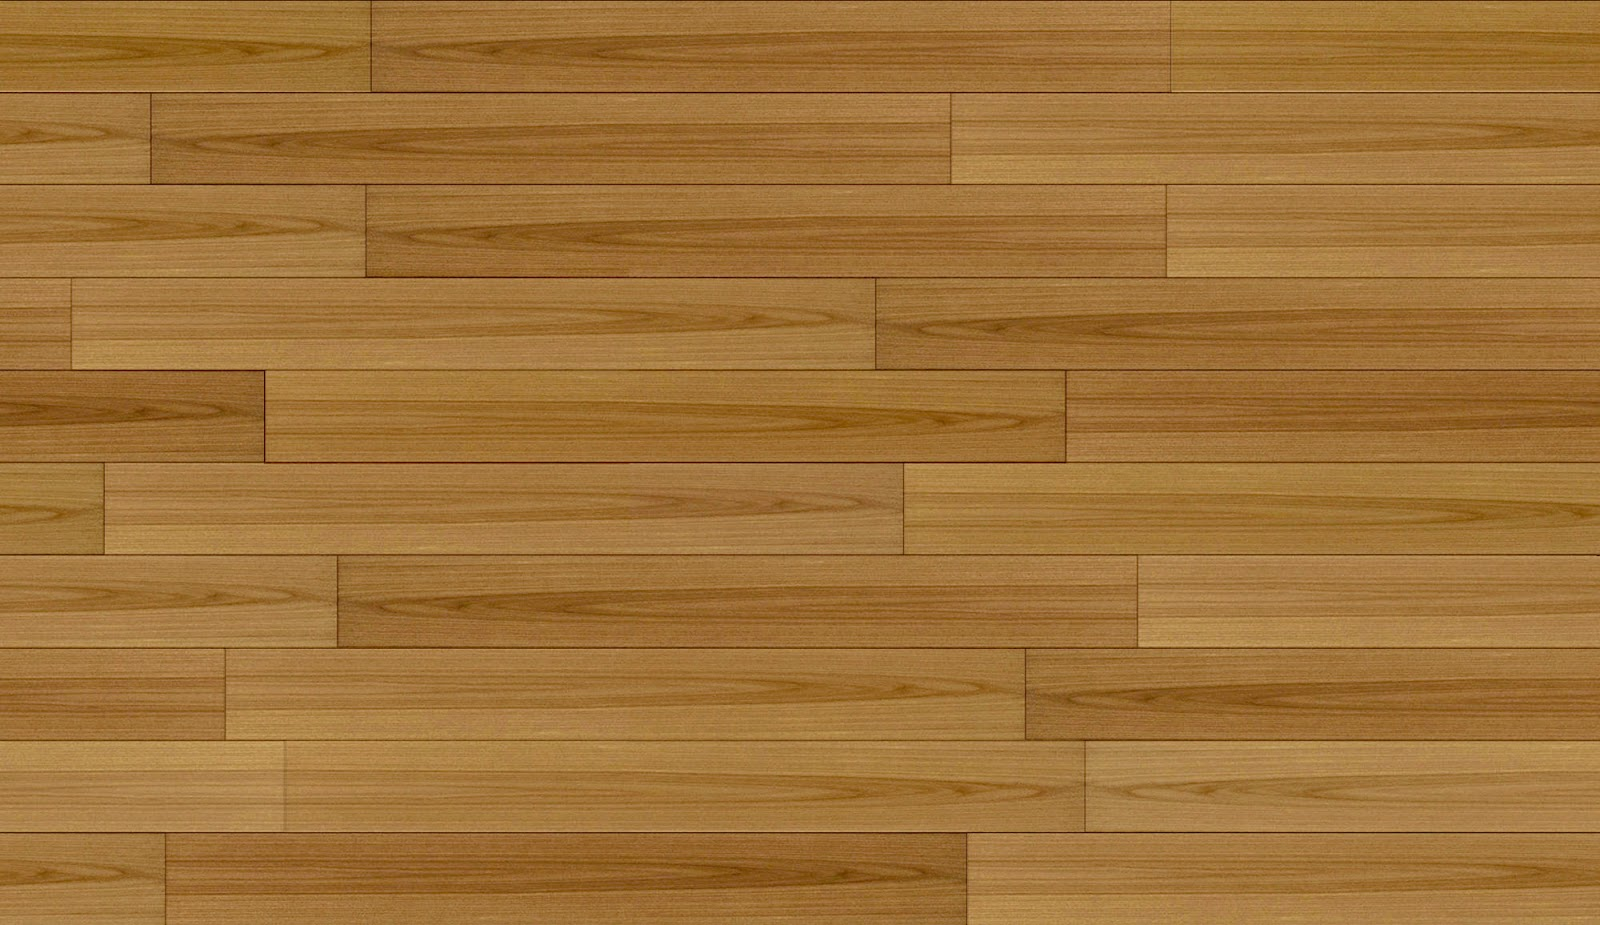 Tileable Wood Texture New Floors Laminate Seamless Textures